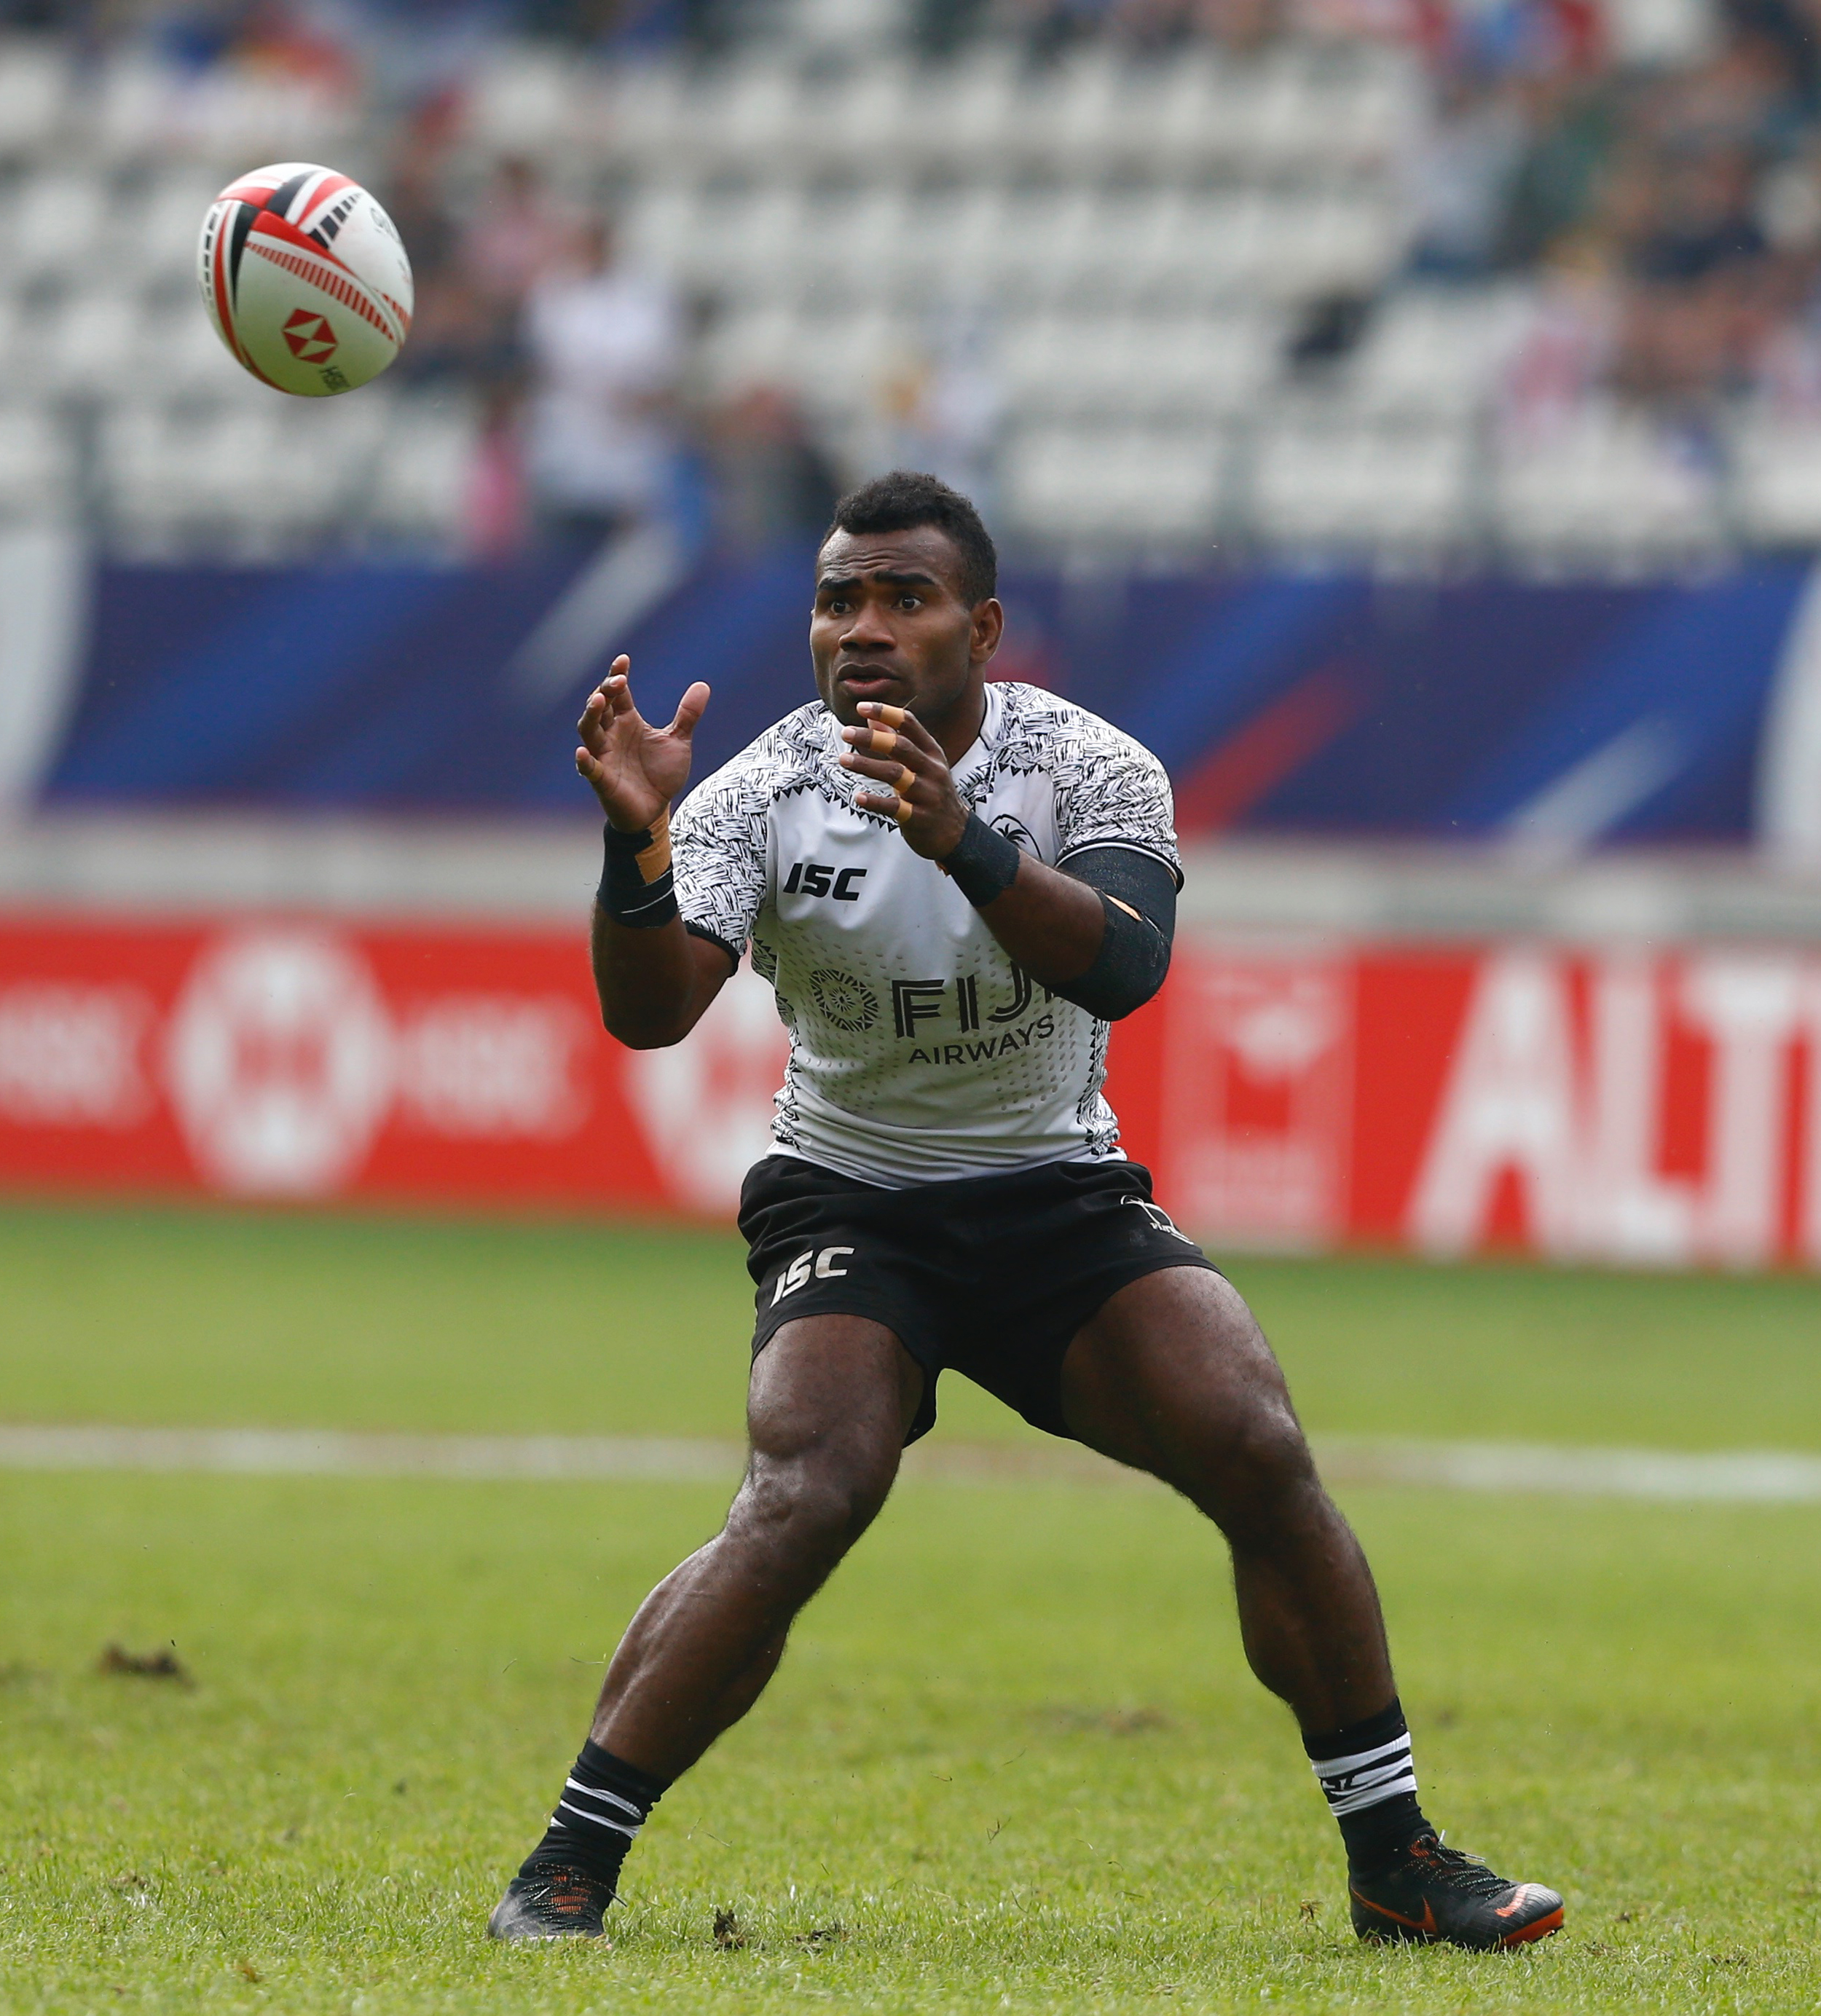 Fiji Airways Fijian  7's  captain Seremaia Tuwai.Photo: Martin Seras Lima